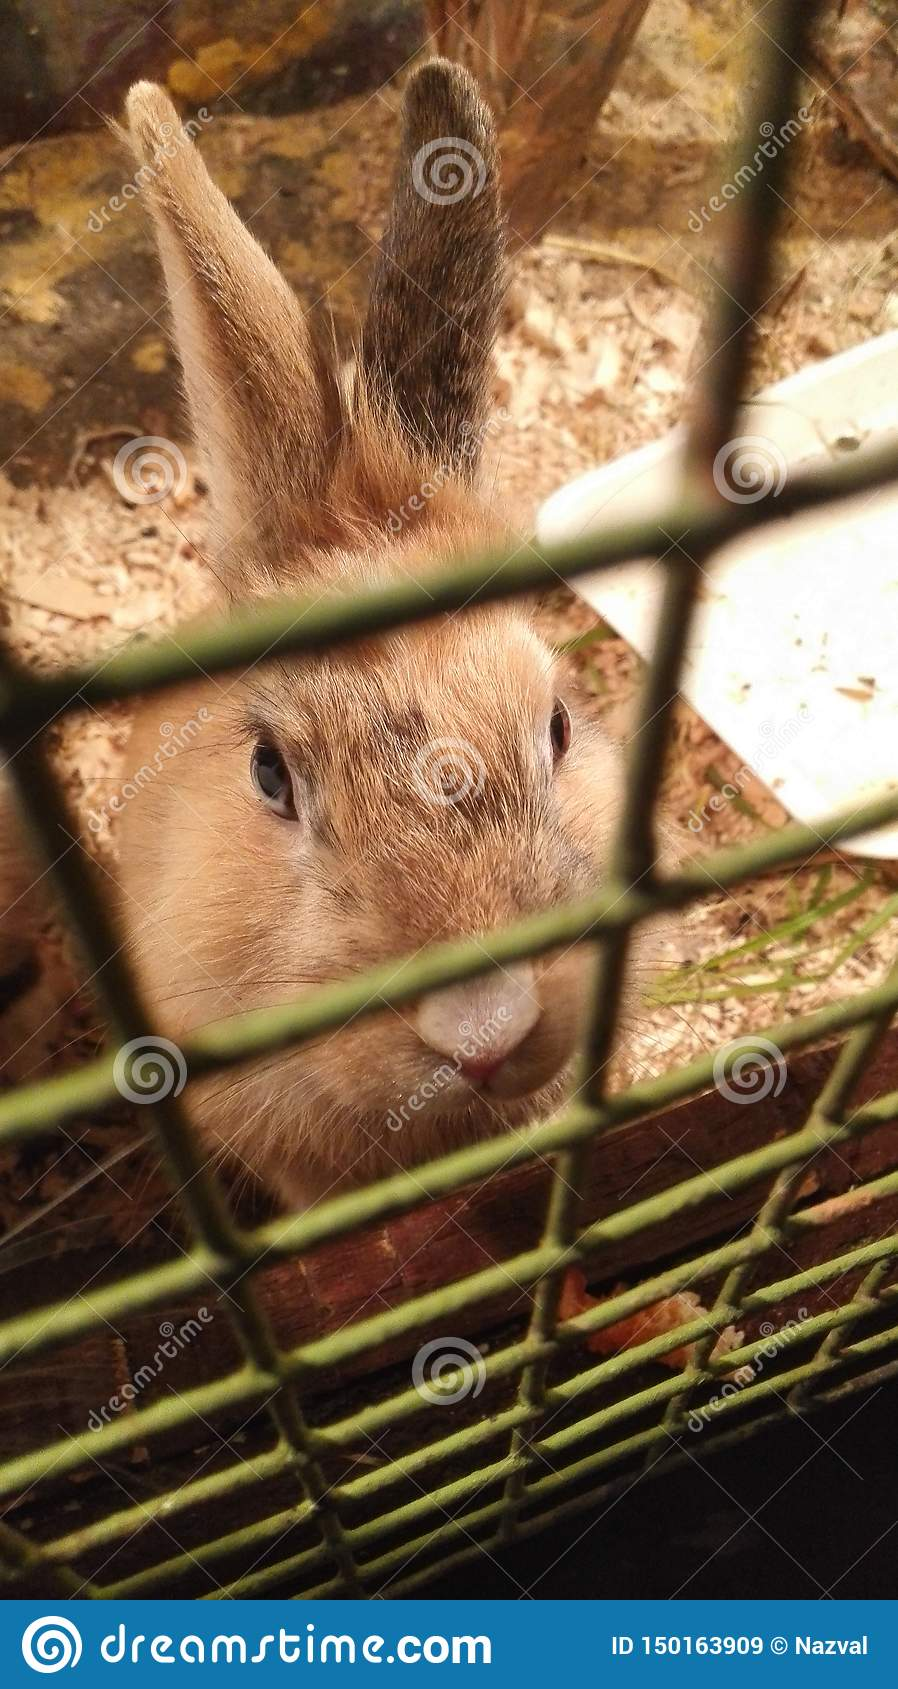 Rabbit sitting in a cage and looks angry and hungry eyes